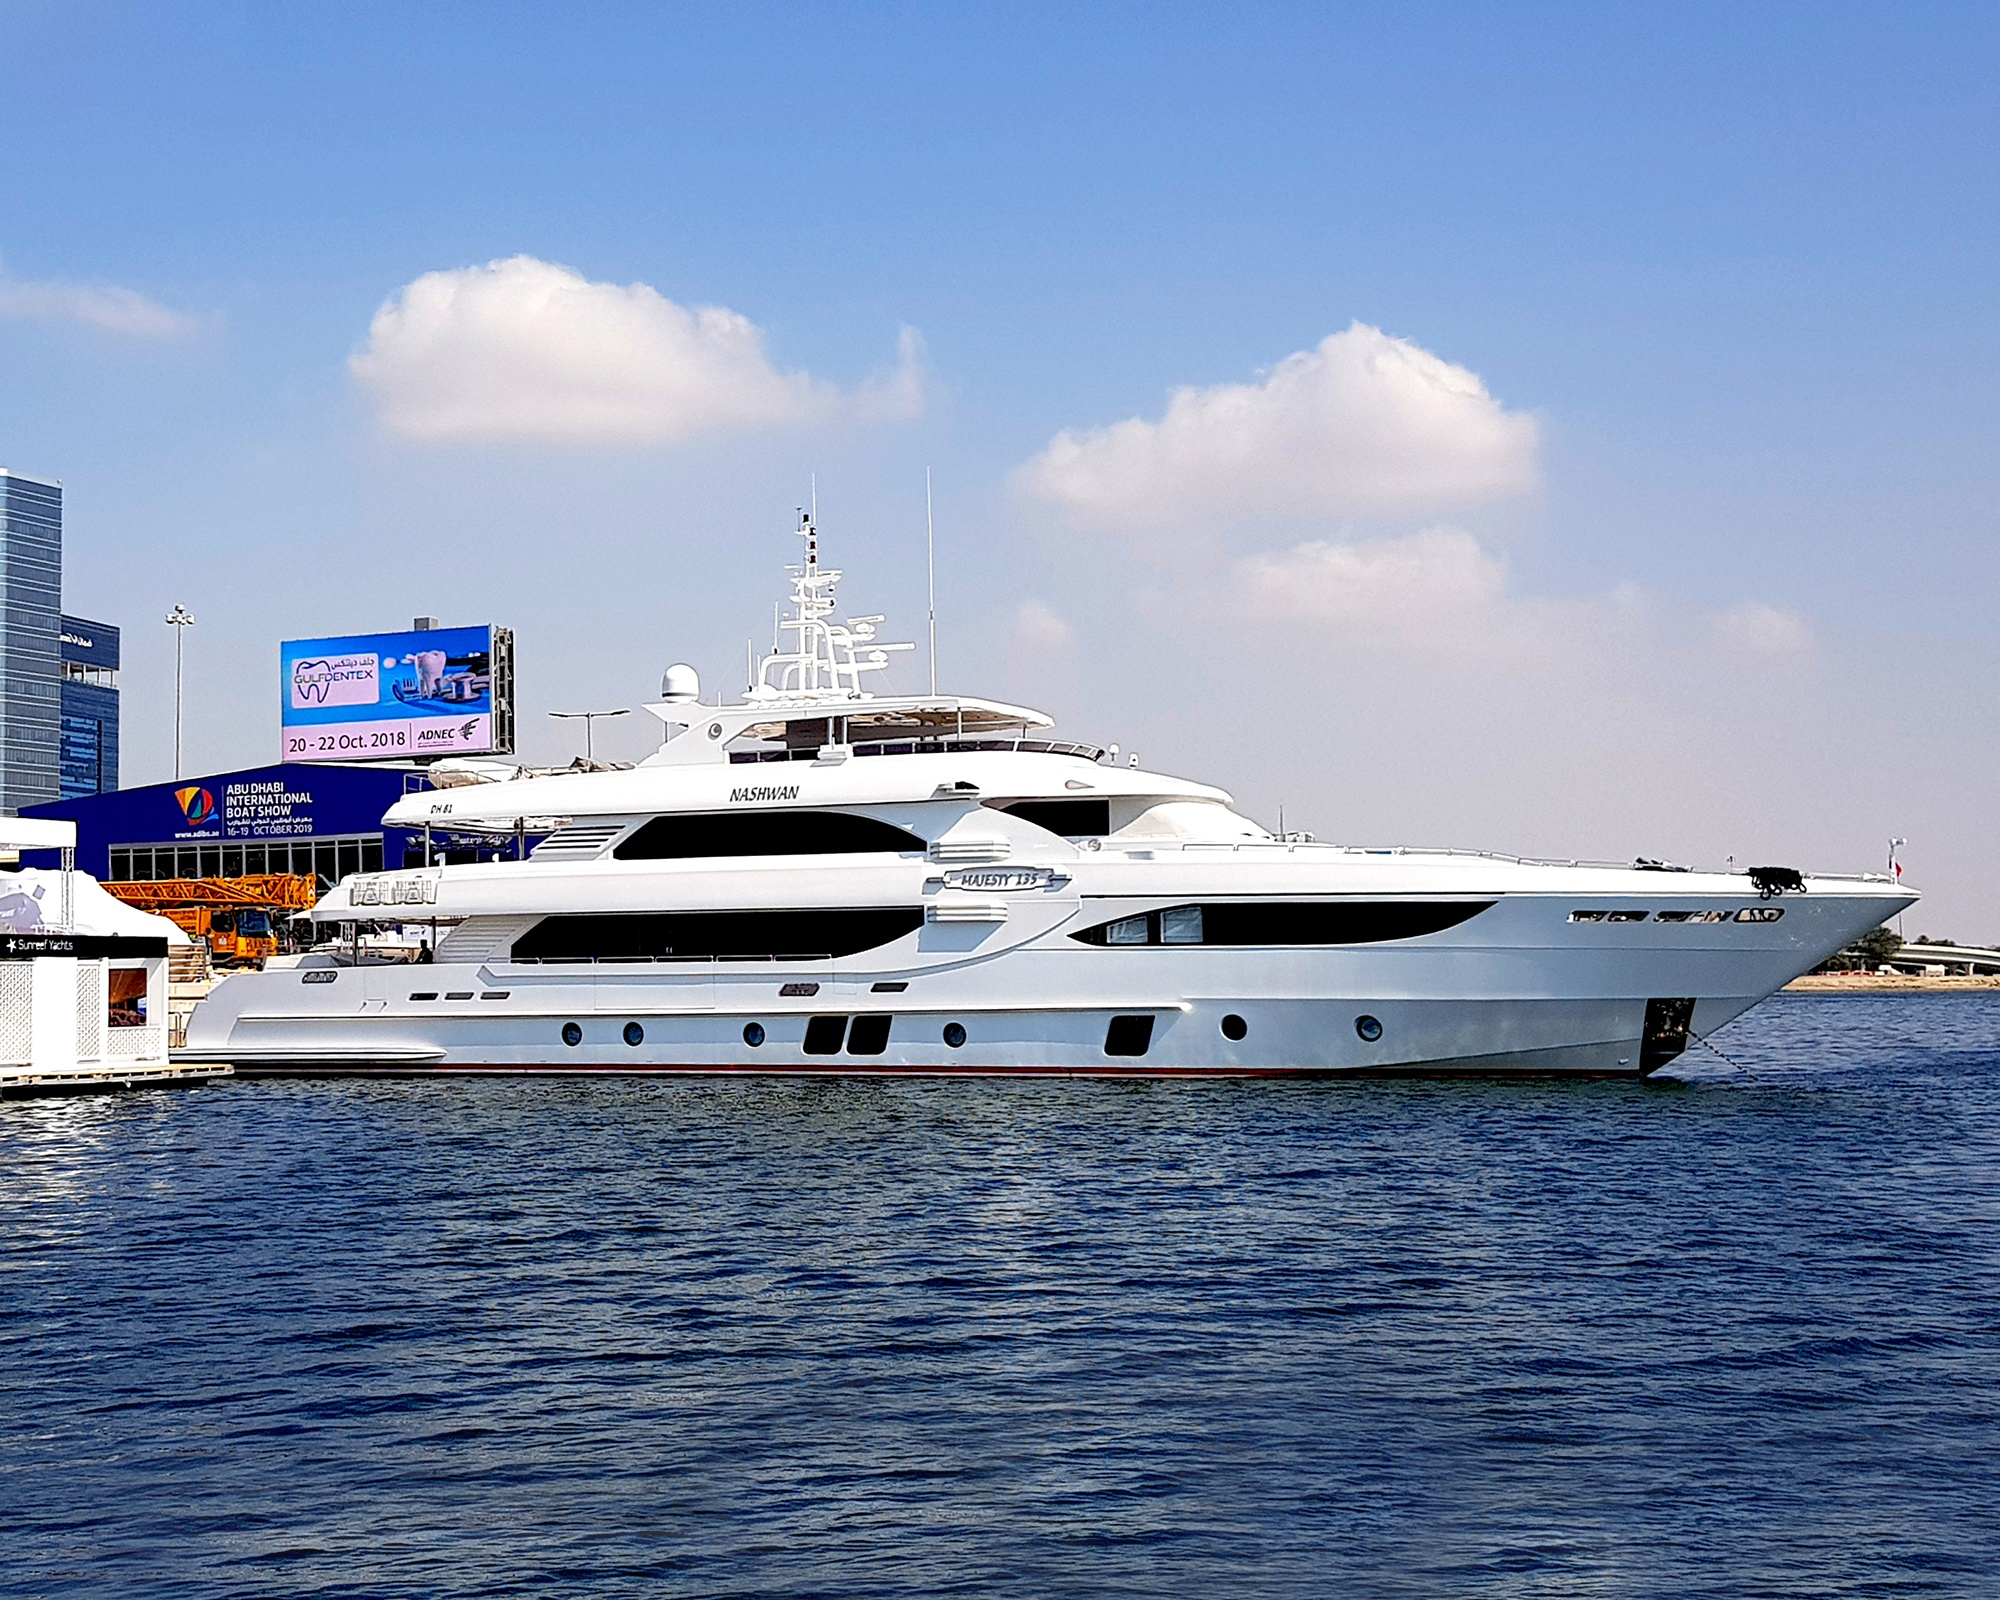 Visit the Majesty 135 superyacht at the Abu Dhabi Boat Show